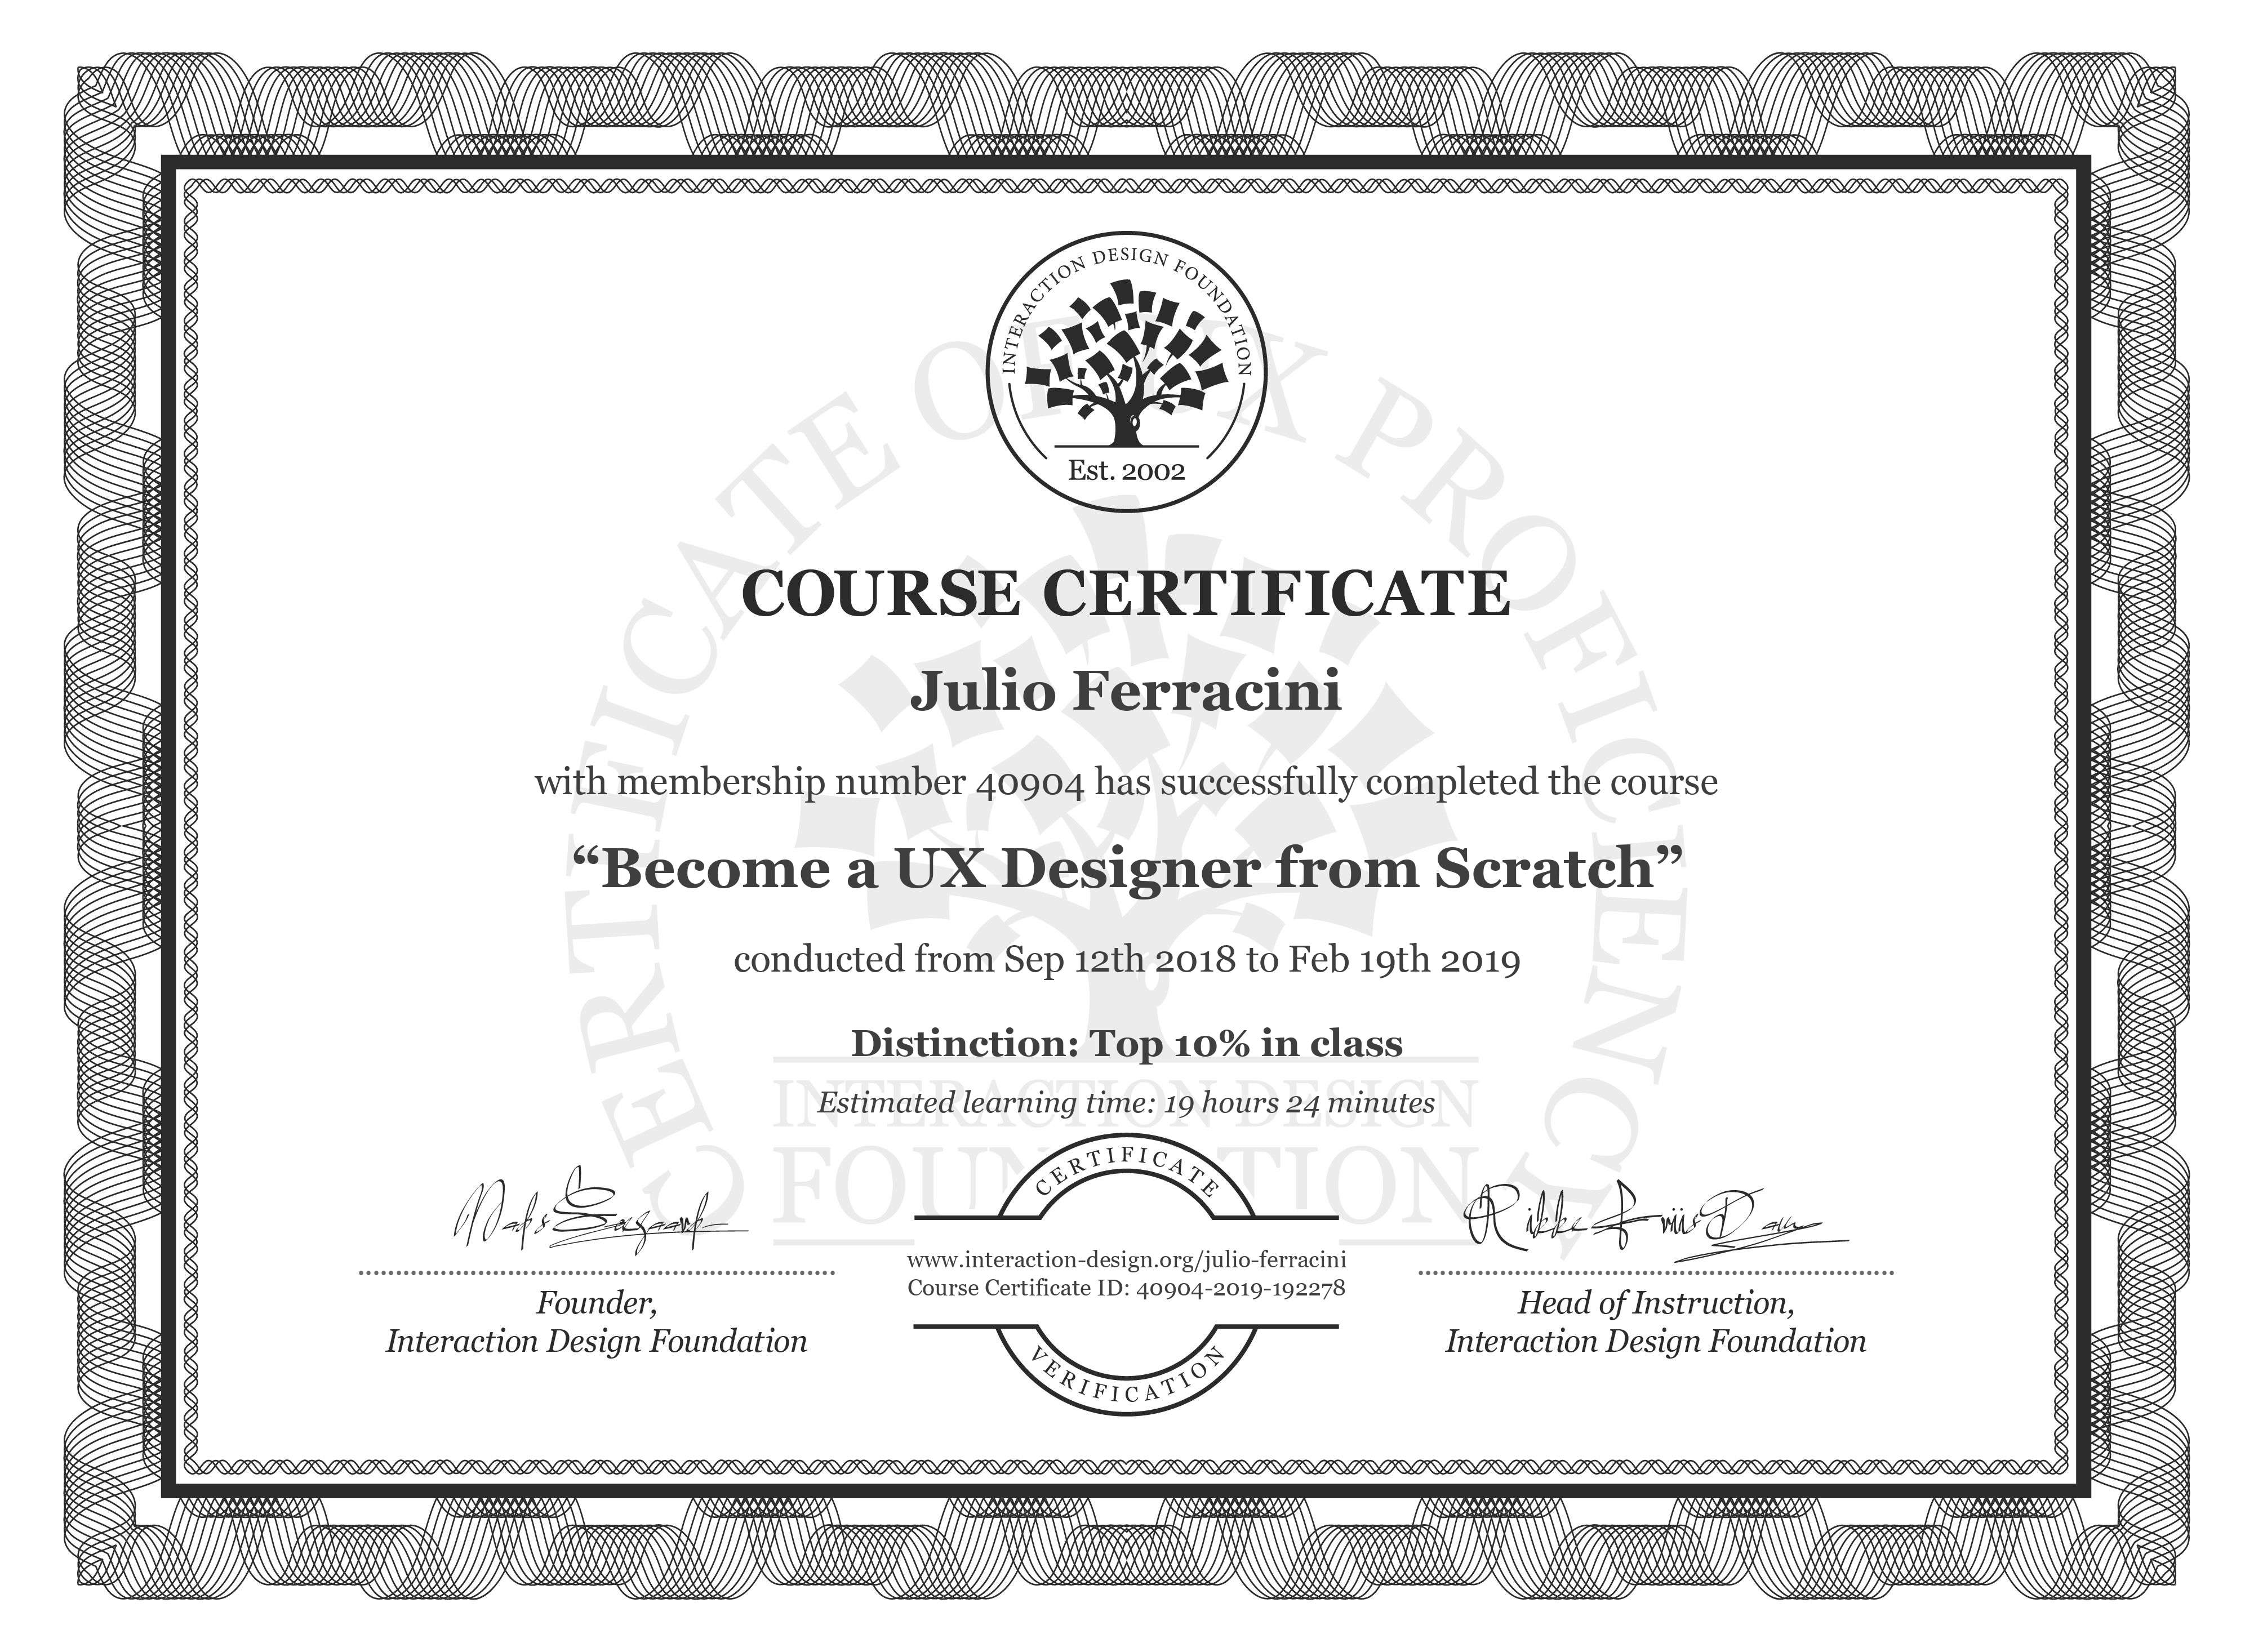 Julio Ferracini's Course Certificate: User Experience: The Beginner's Guide